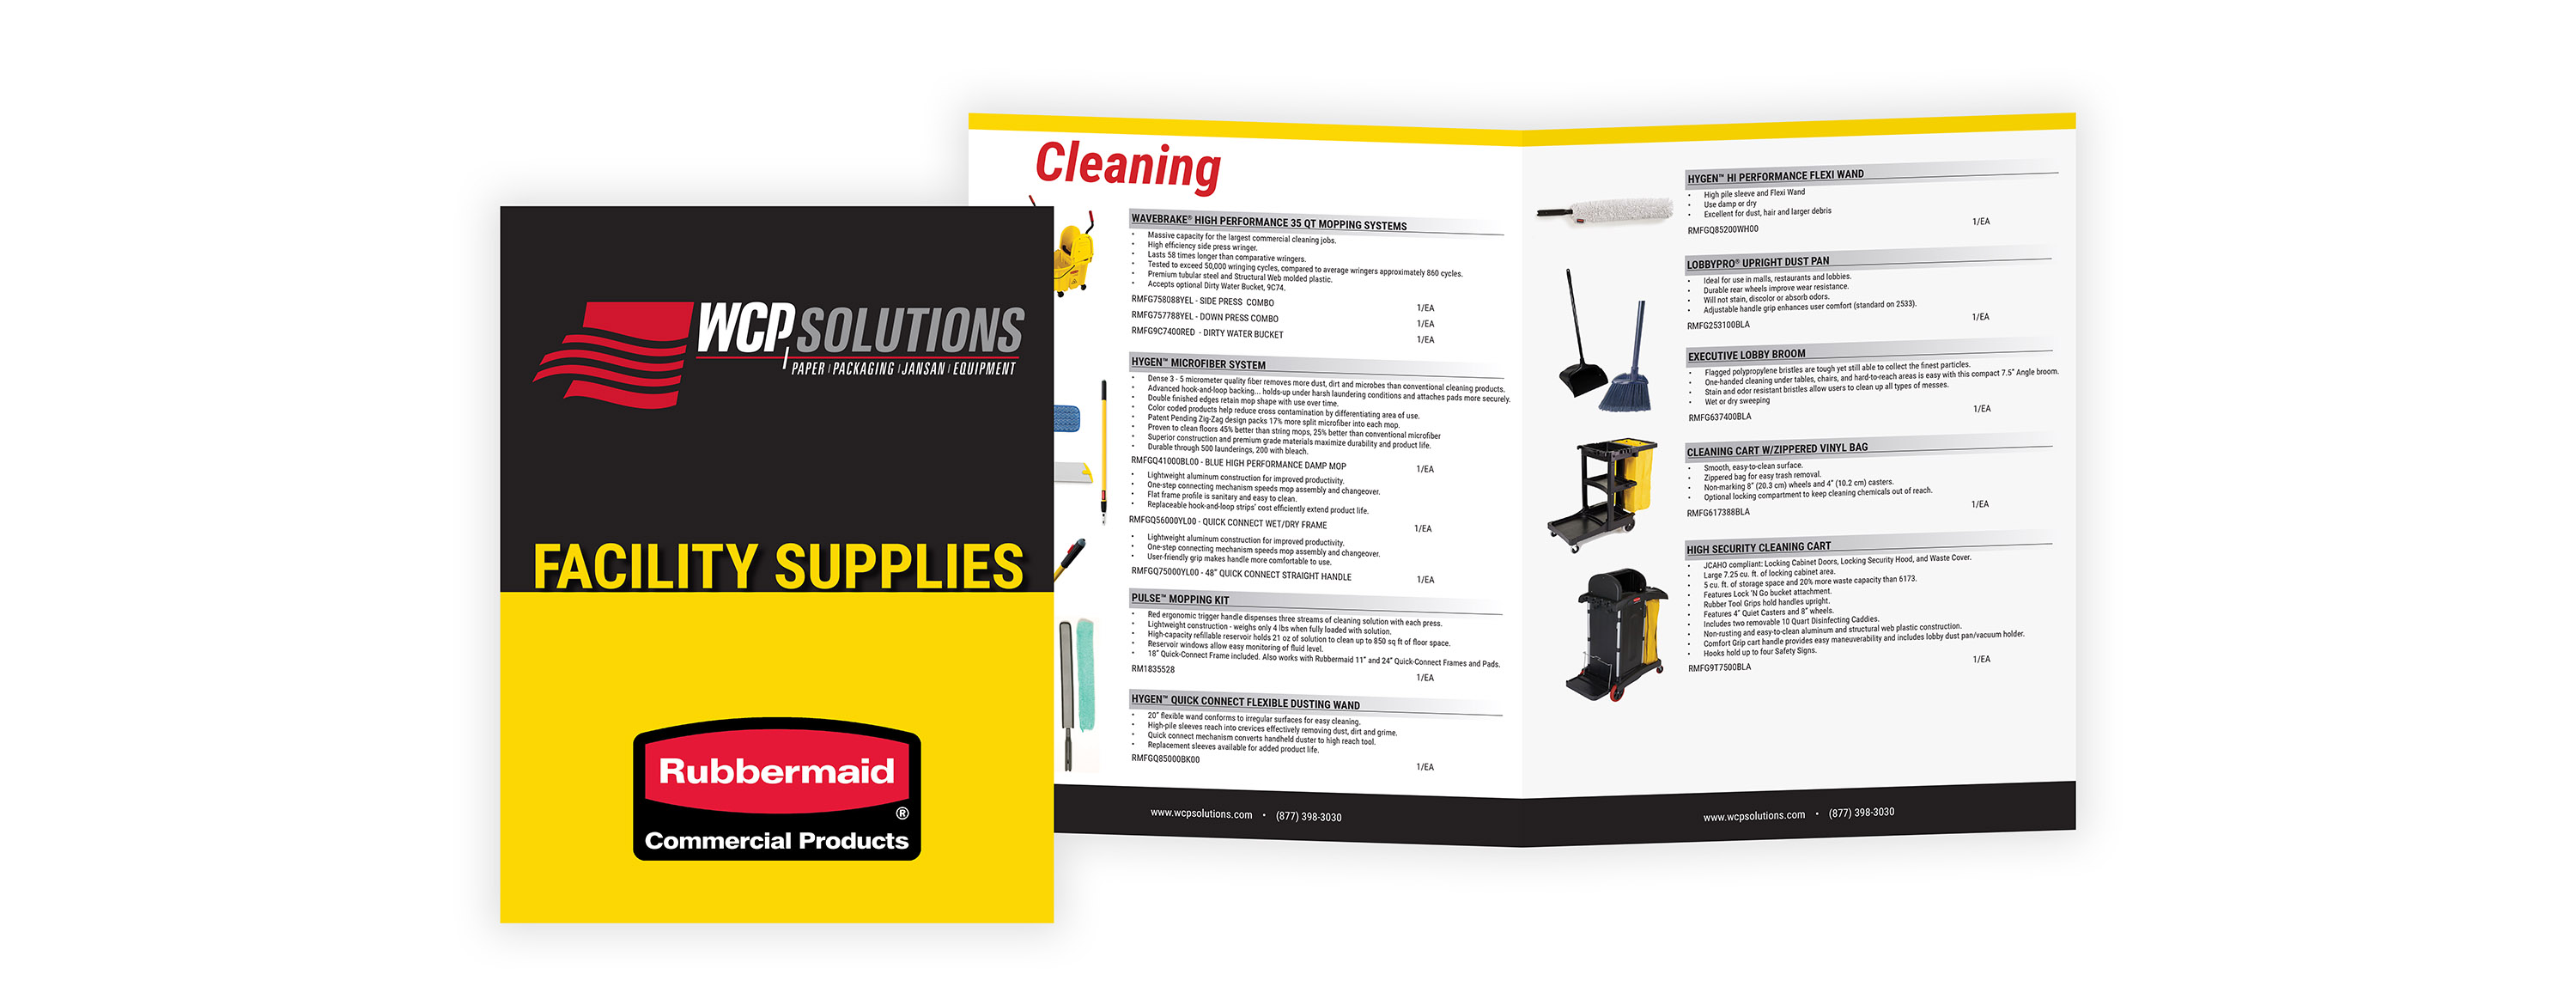 WCP Solutions Rubbermaid Building and Facility Supplies Catalog